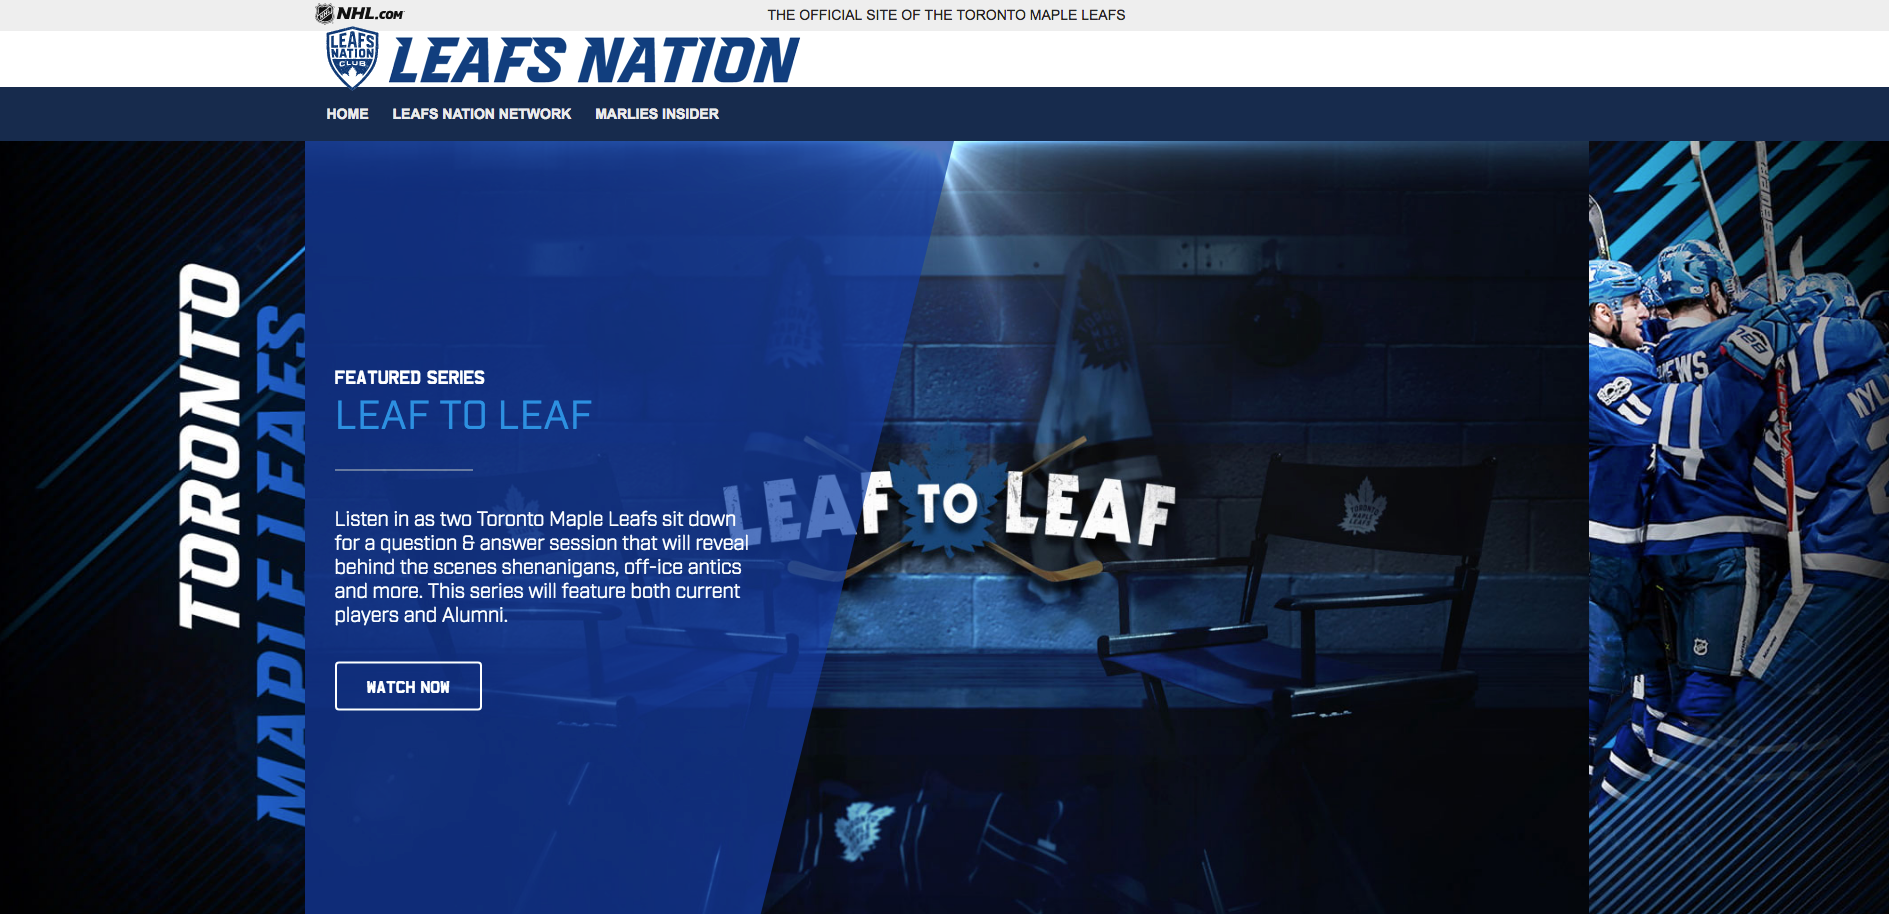 MLSE - Toronto Maple Leafs Nation